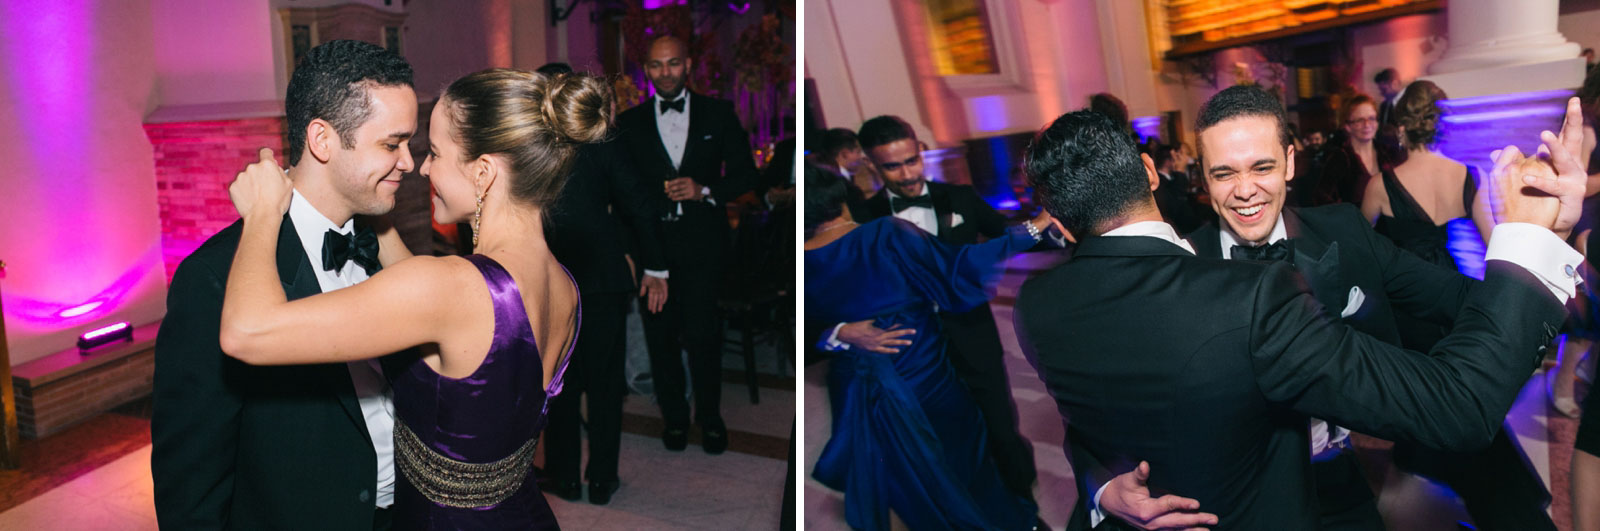 Wedding guests dancing during wedding reception with colored up-lighting at Boston public library